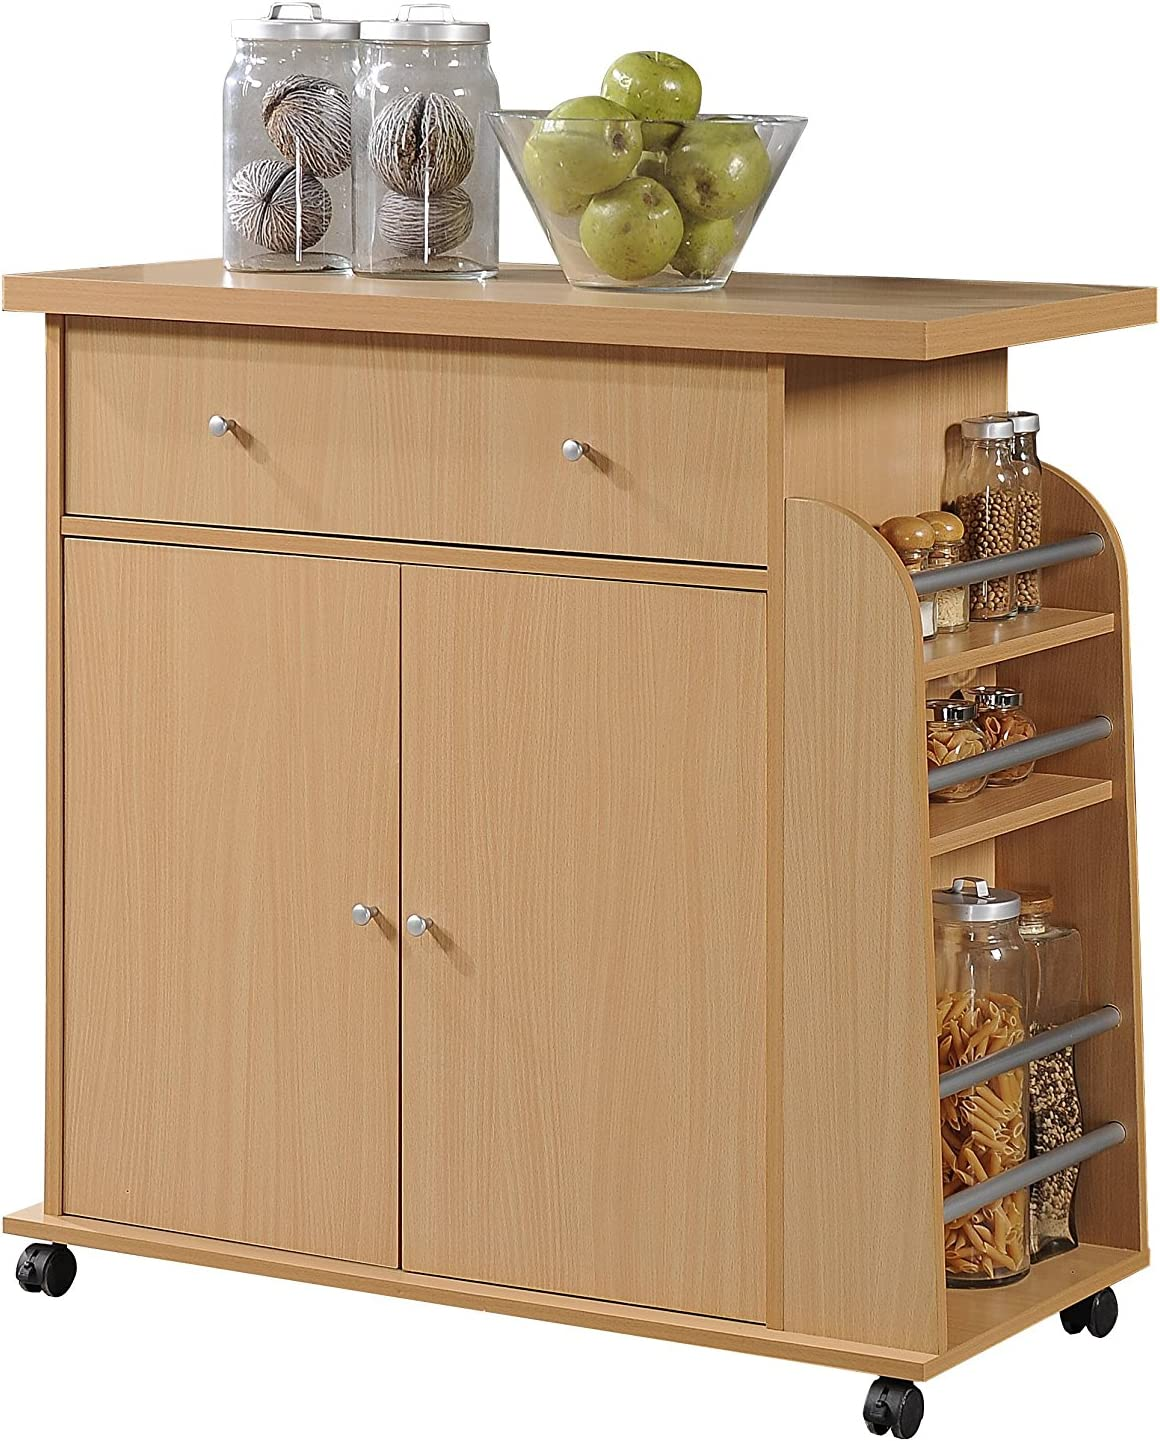 Hodedah Import Kitchen Island with Spice Rack and Towel Rack, Beech